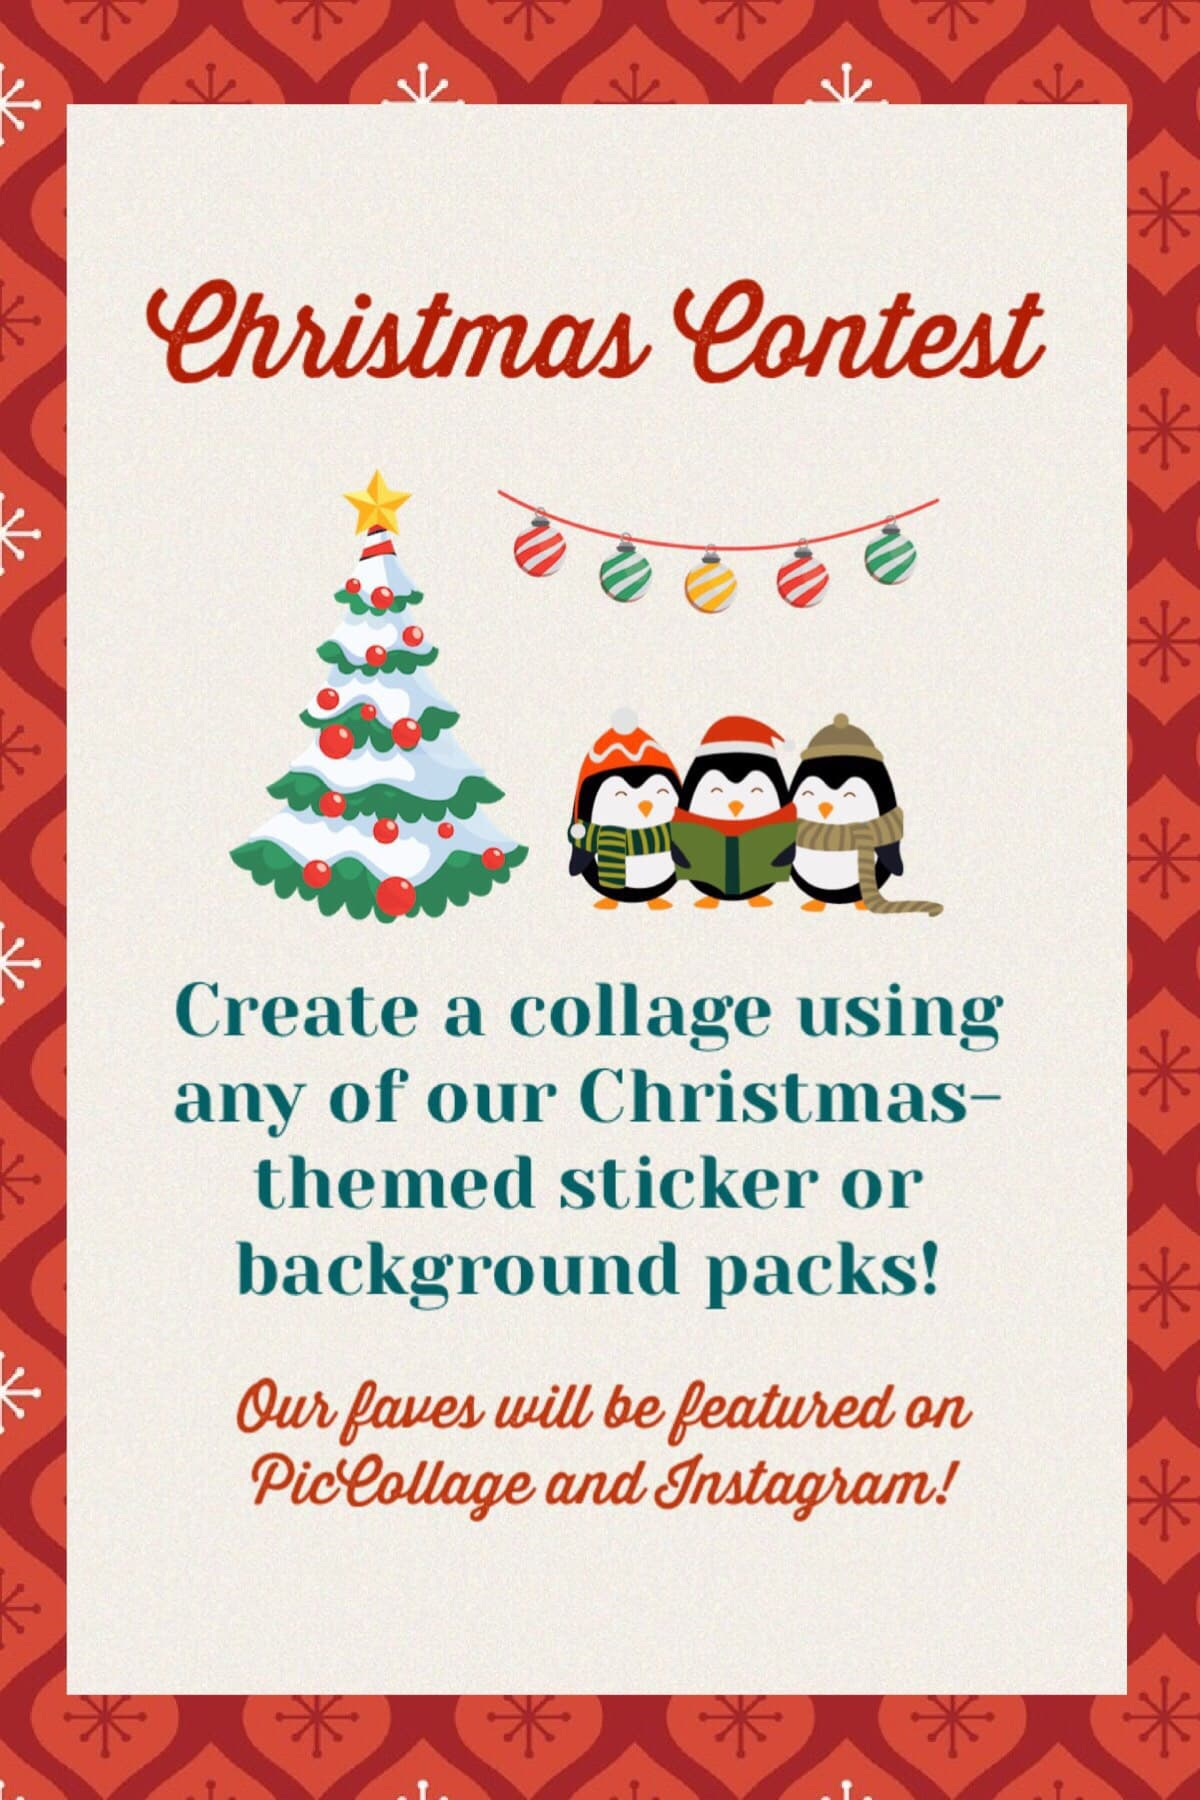 Check out our Christmas Contest! Deadline is December 27, 2018! 🎄